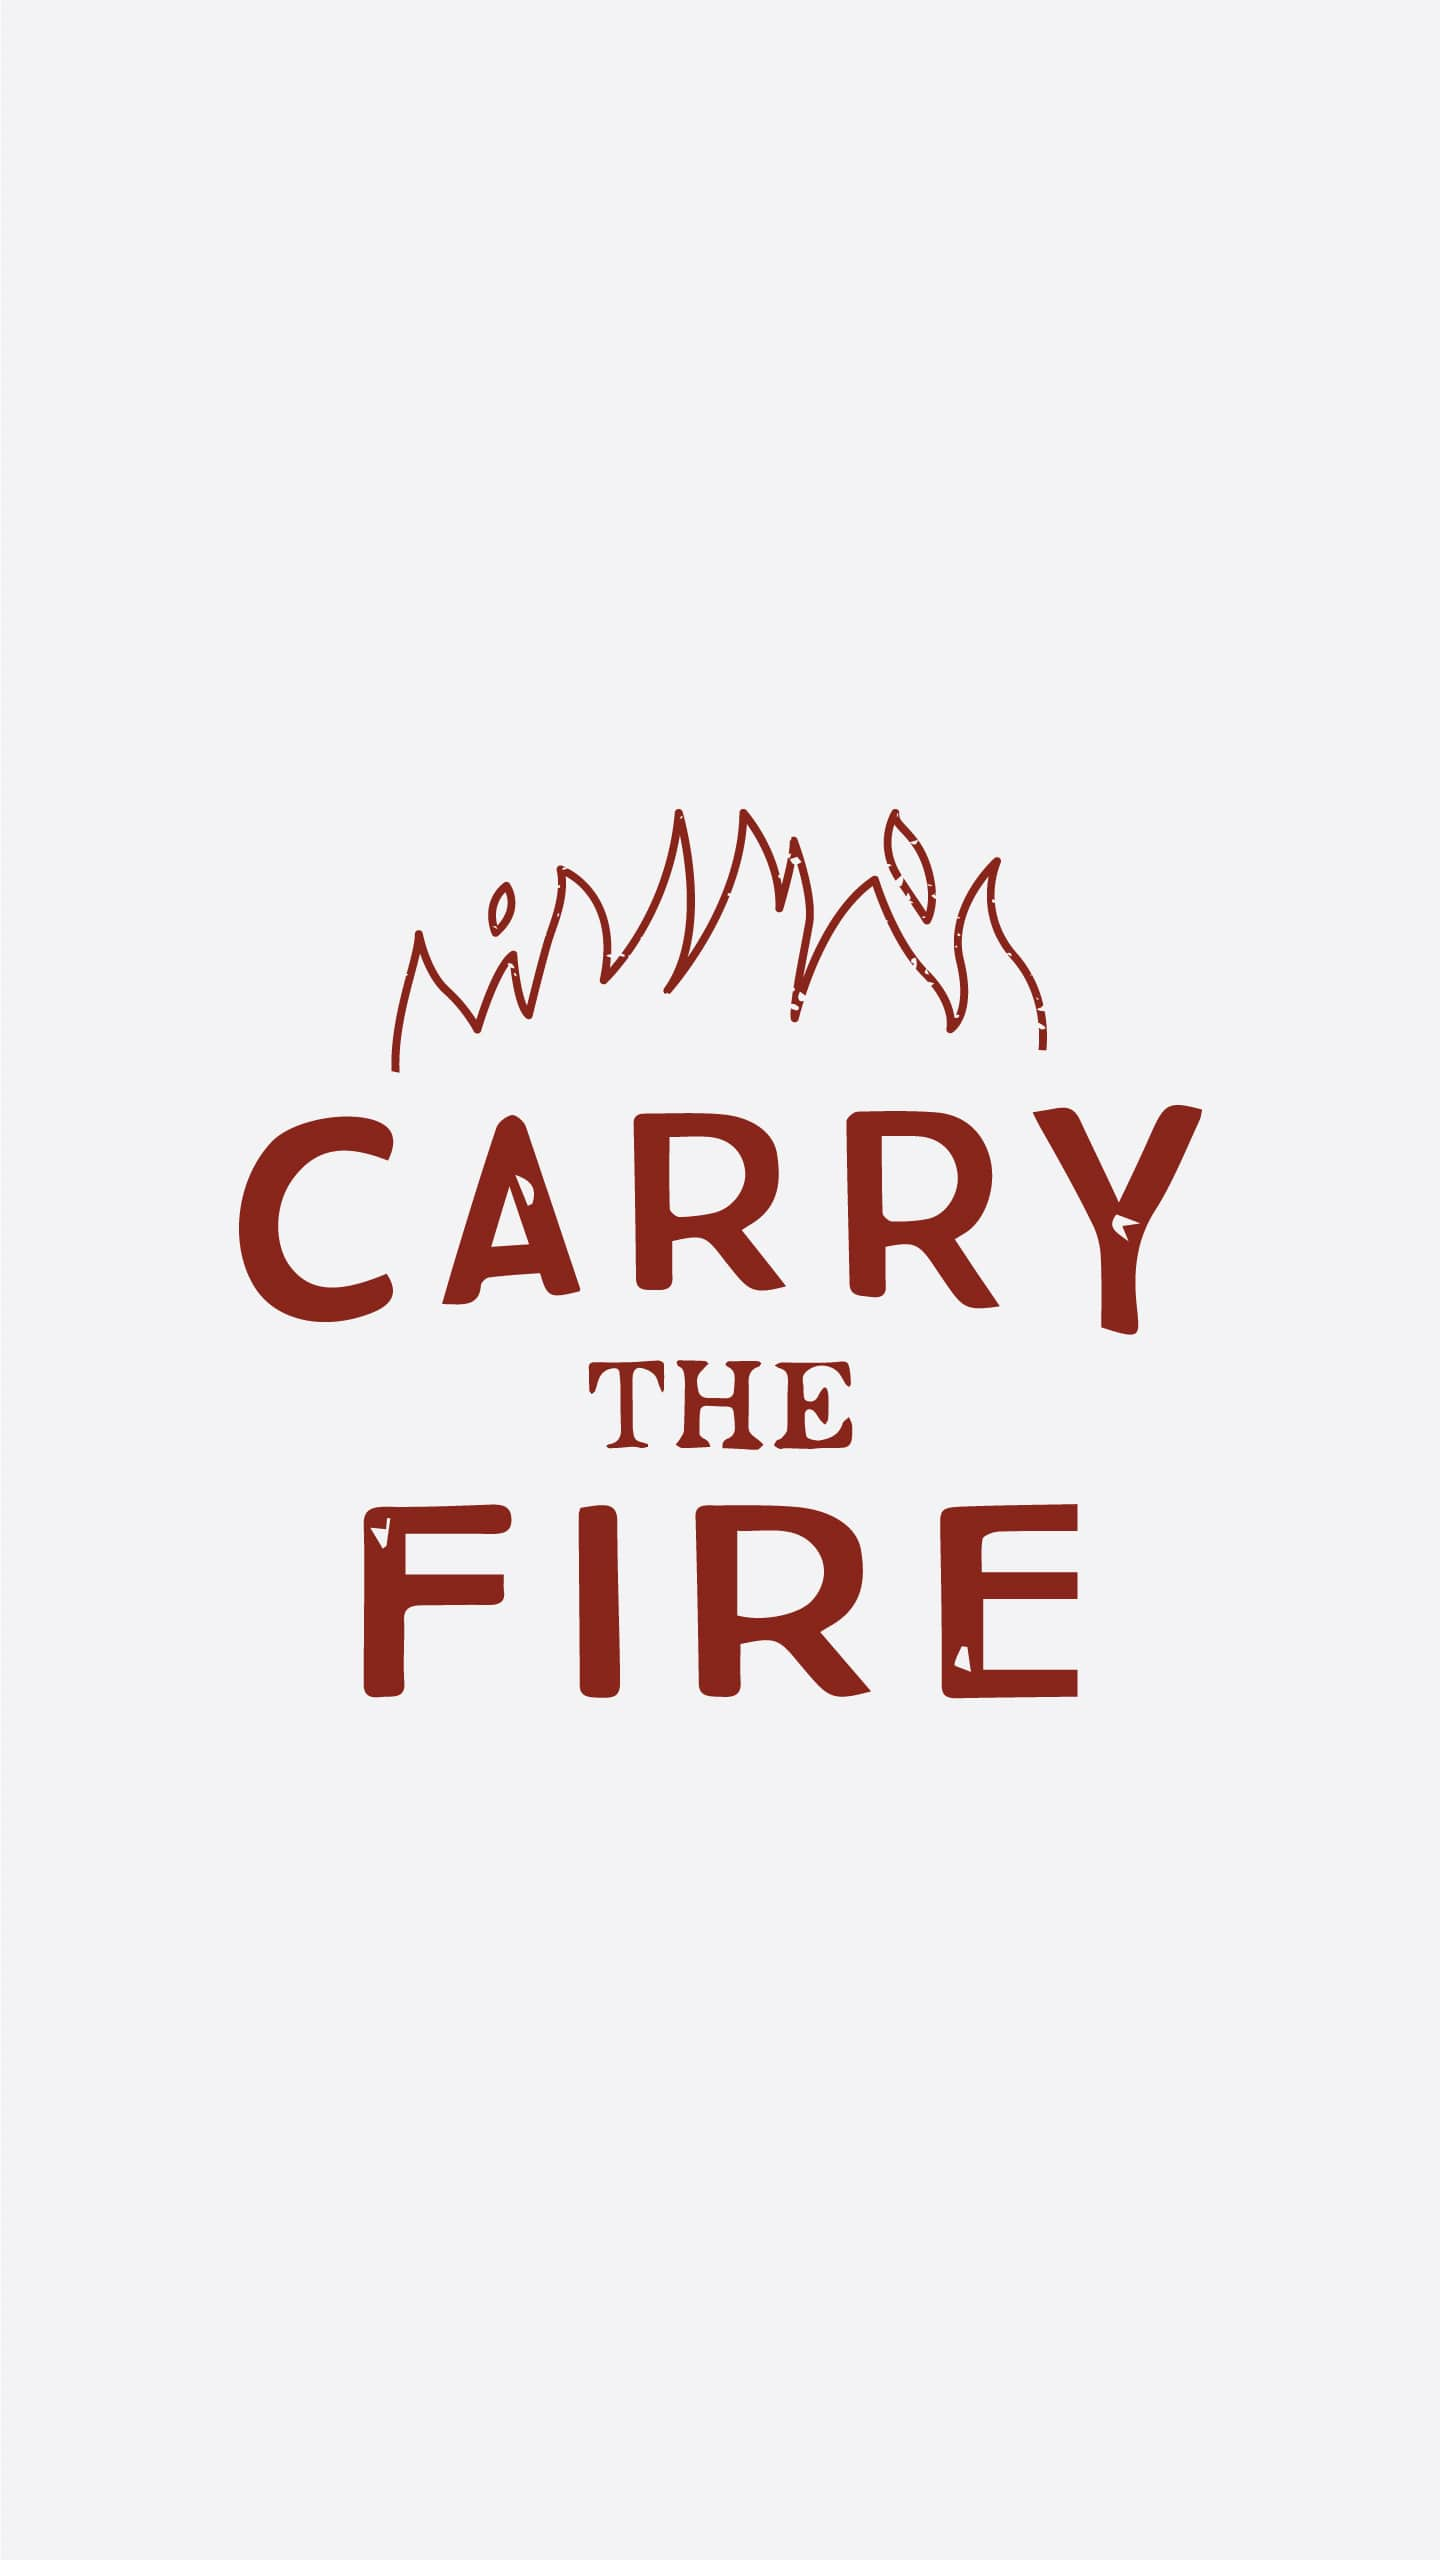 Carry the fire wallpaper# 3.